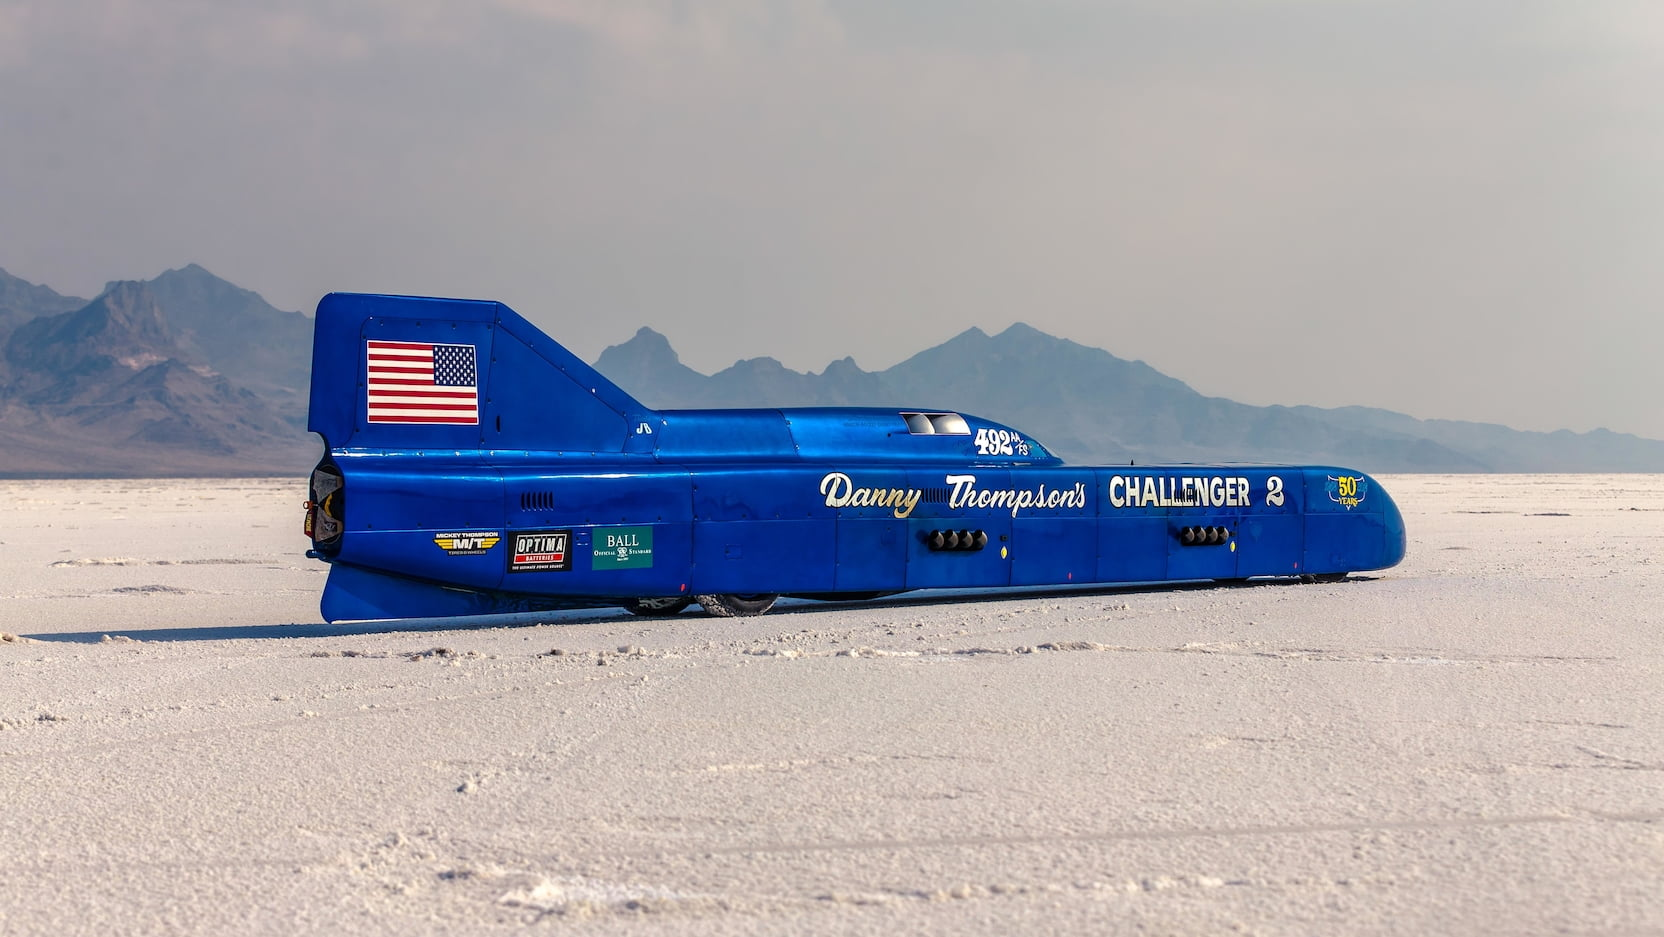 Challenger 2 speed record car